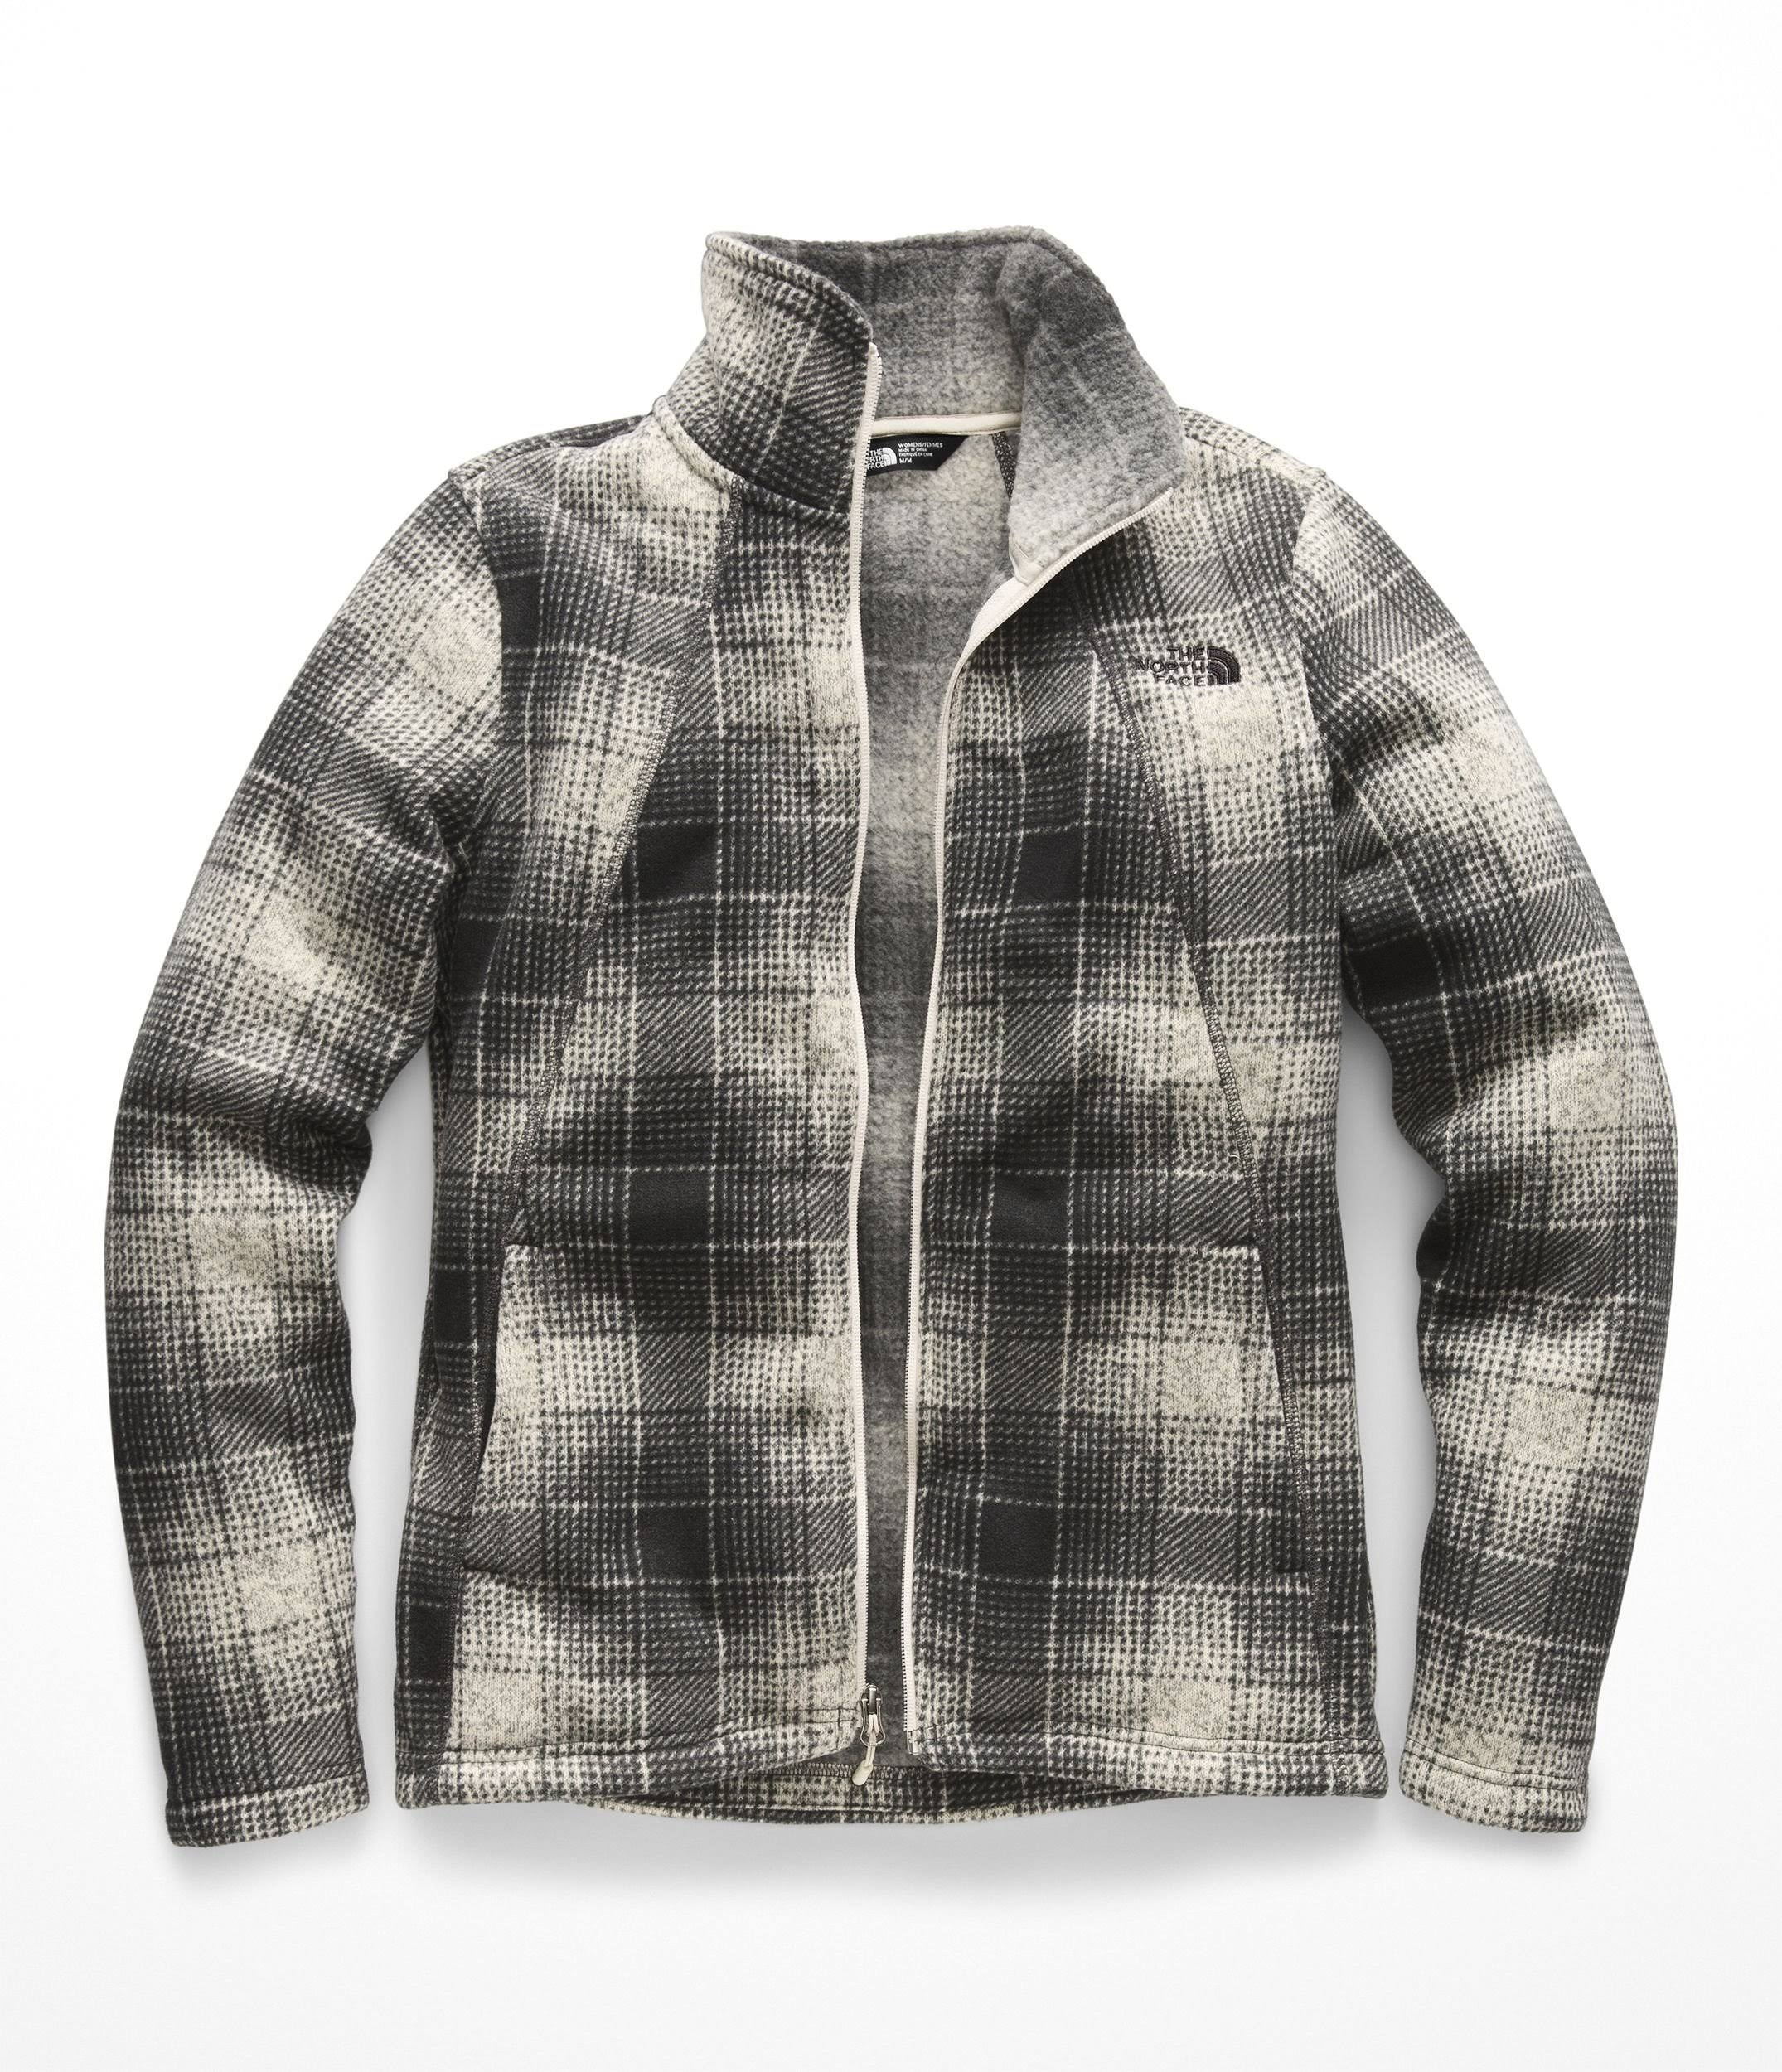 Cremallera Xs Ombre Blanco North The Plaid Para Vintage Mujer Completa Regular Face rYrvwz46q